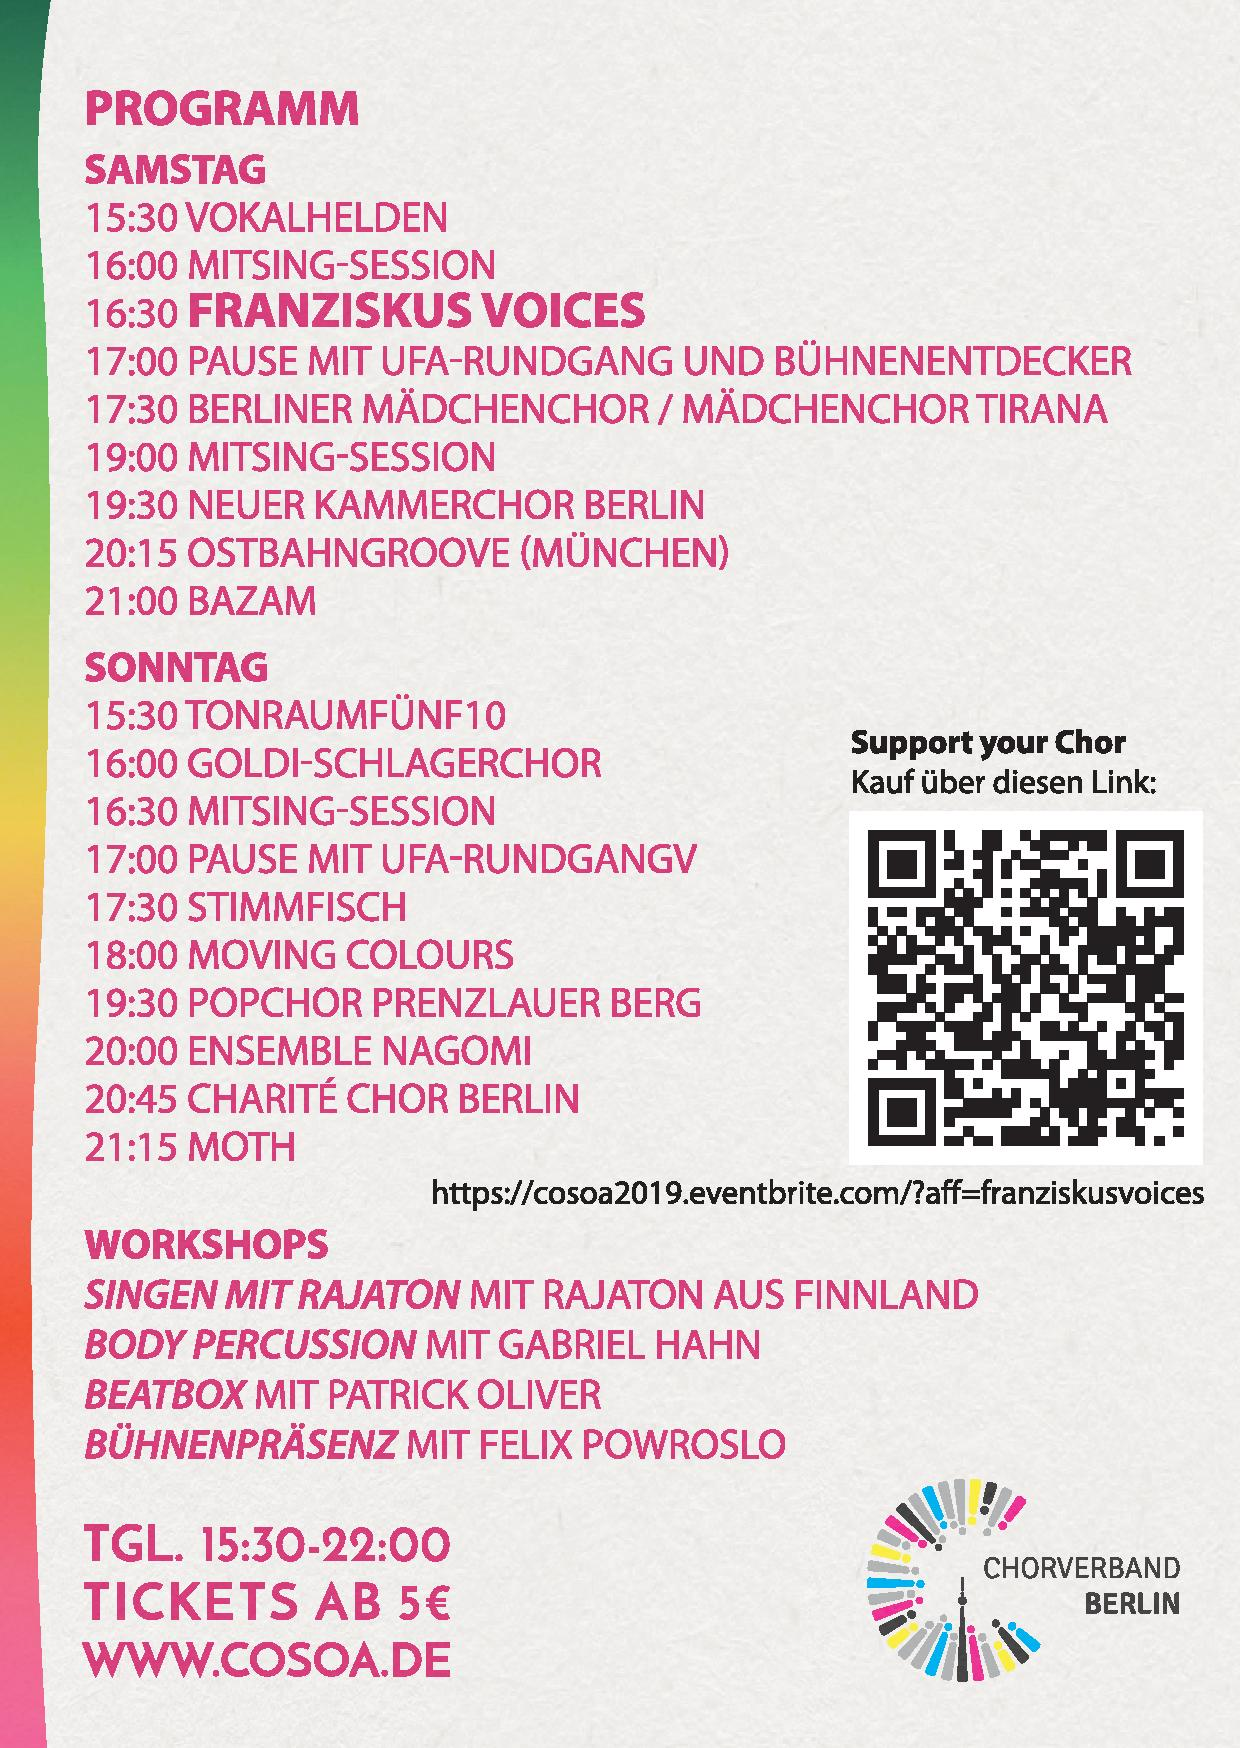 COSOA_2019_Flyer2_fransziskusvoices-page-002